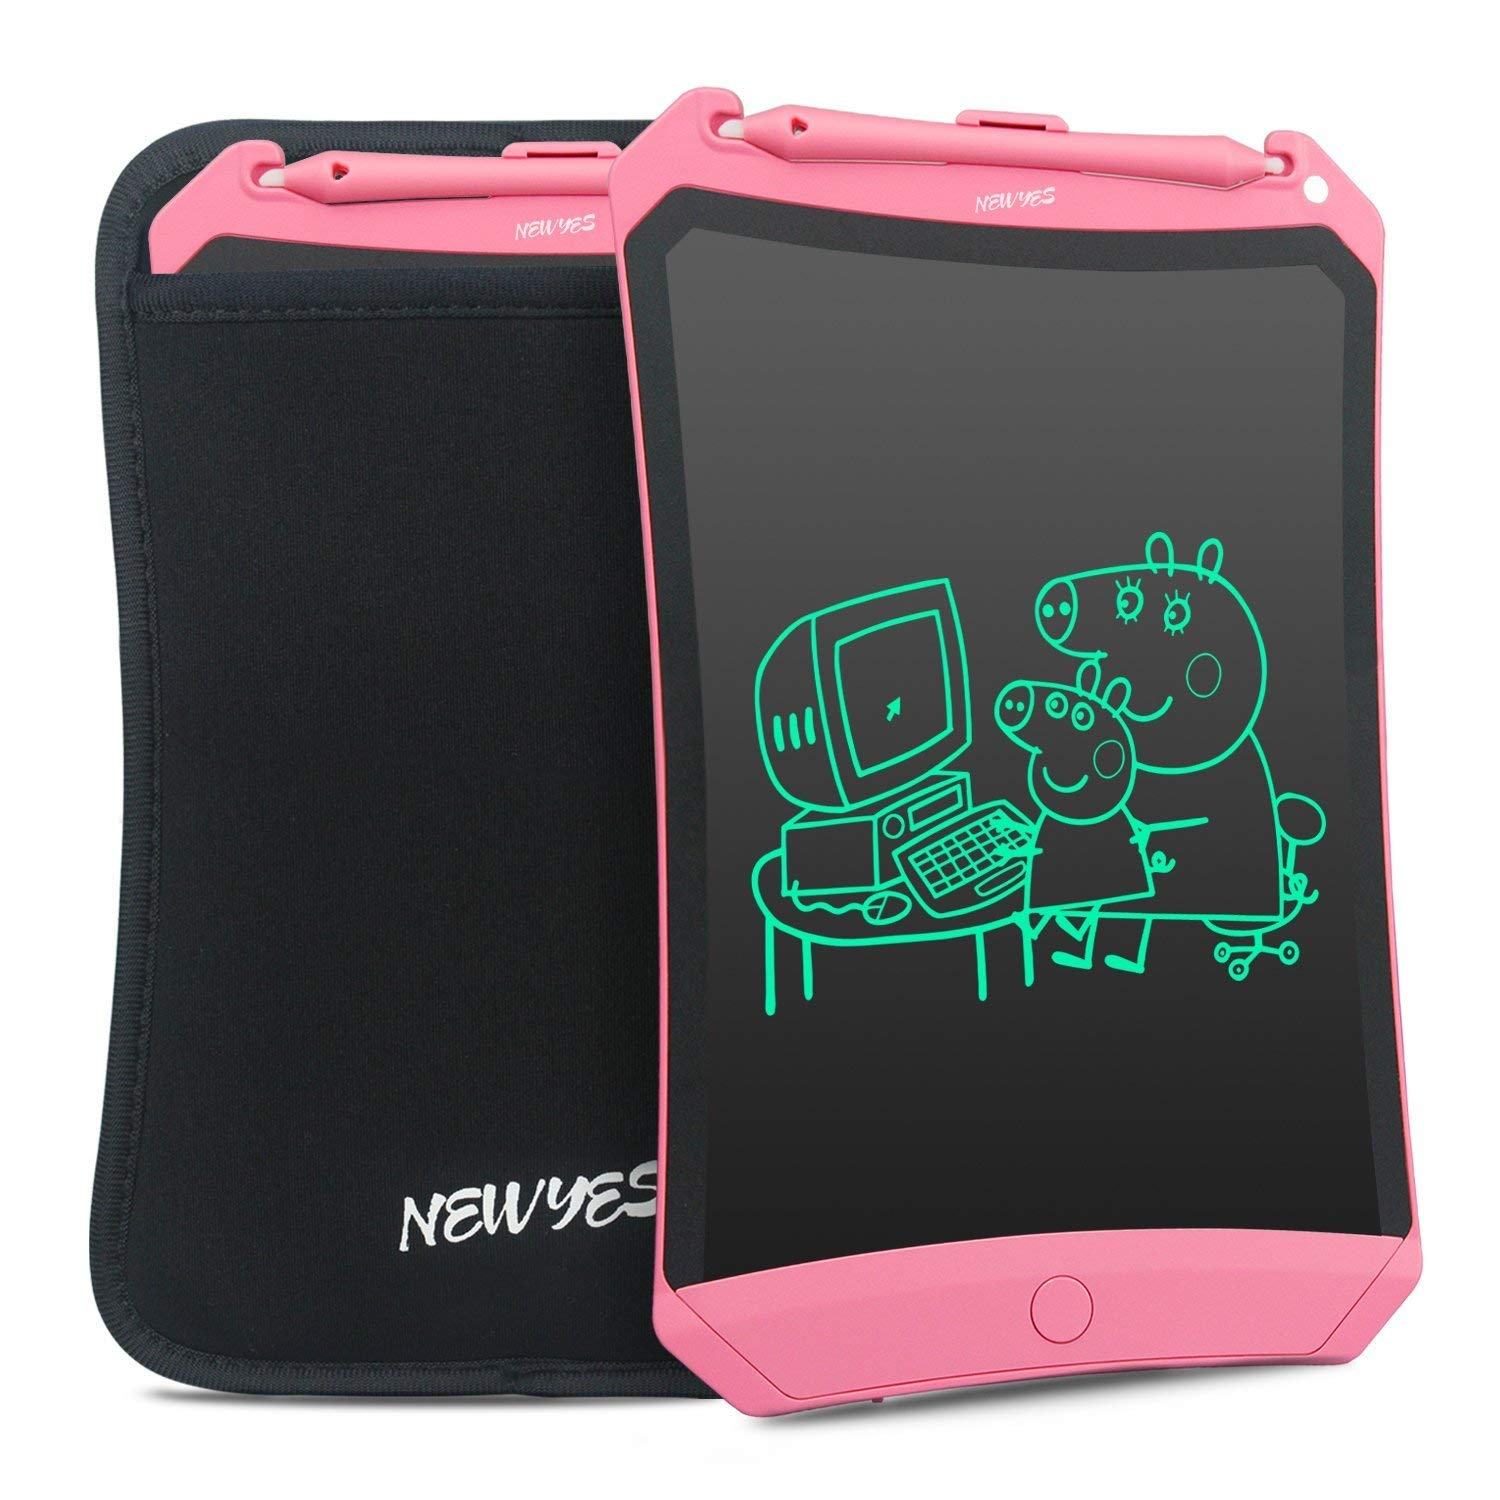 Newyes Robot pad 8.5 Inch LCD Writing Tablet Electronic Writings Pads Drawing Board Gifts for Kids Office Blackboard (Pink with case)